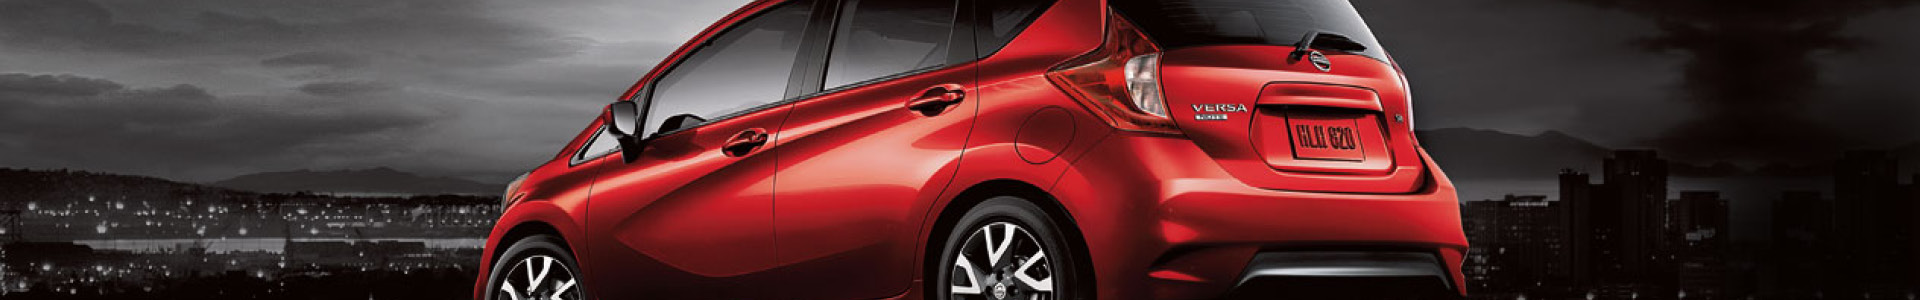 Nissan Versa Note for Sale in Lethbridge, AB